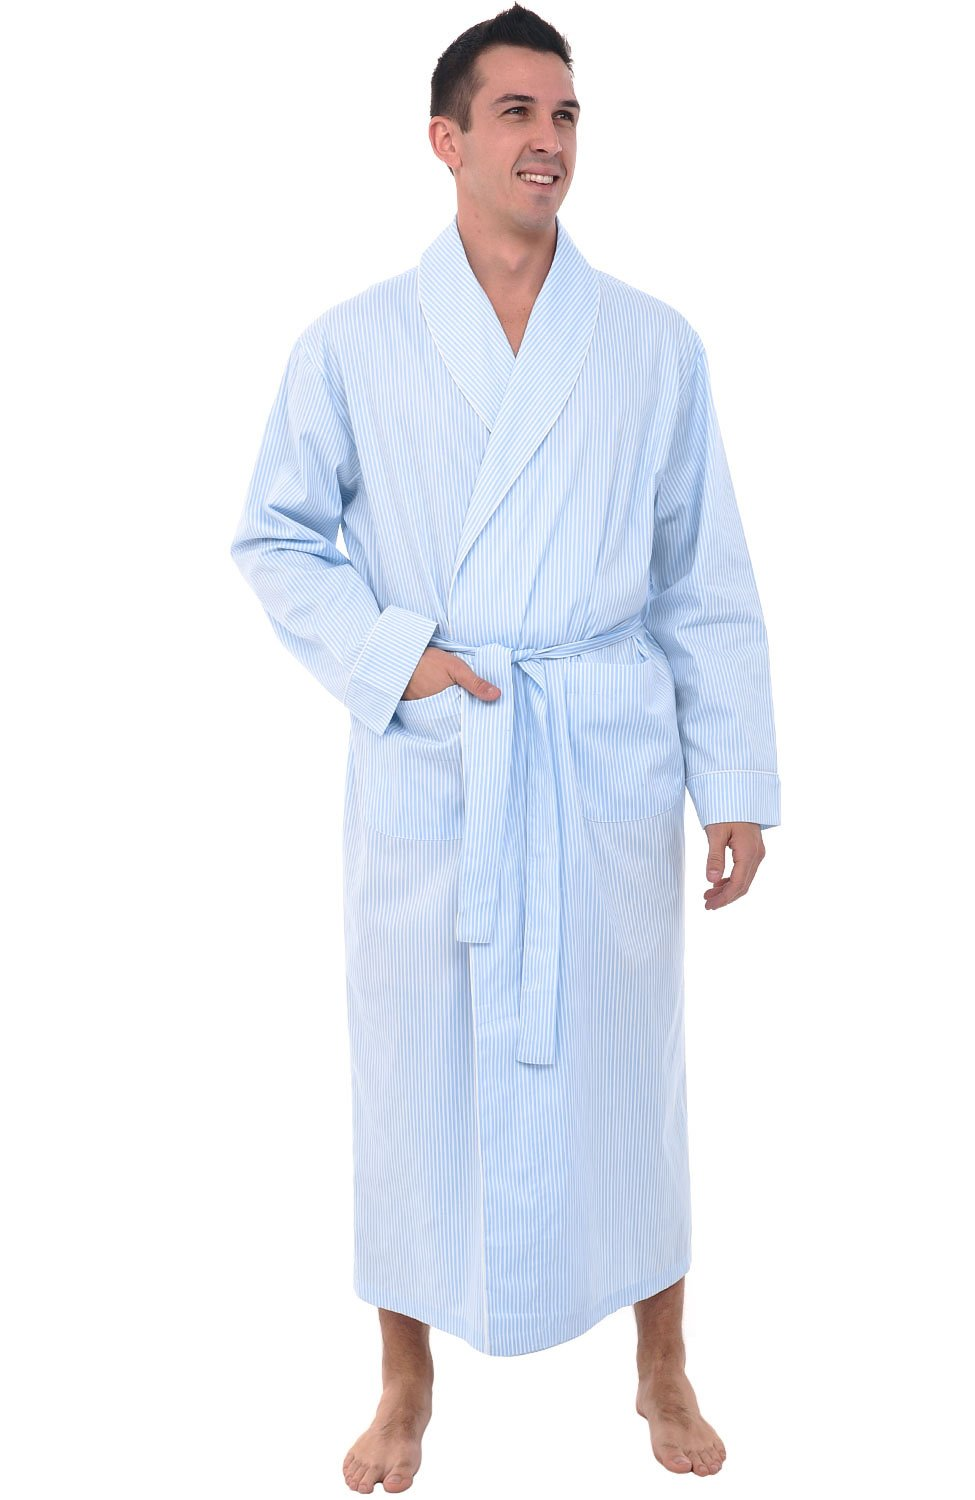 Alexander Del Rossa Mens Cotton Robe, Lightweight Woven Bathrobe, Medium White and Blue Striped (A0715P16MD)